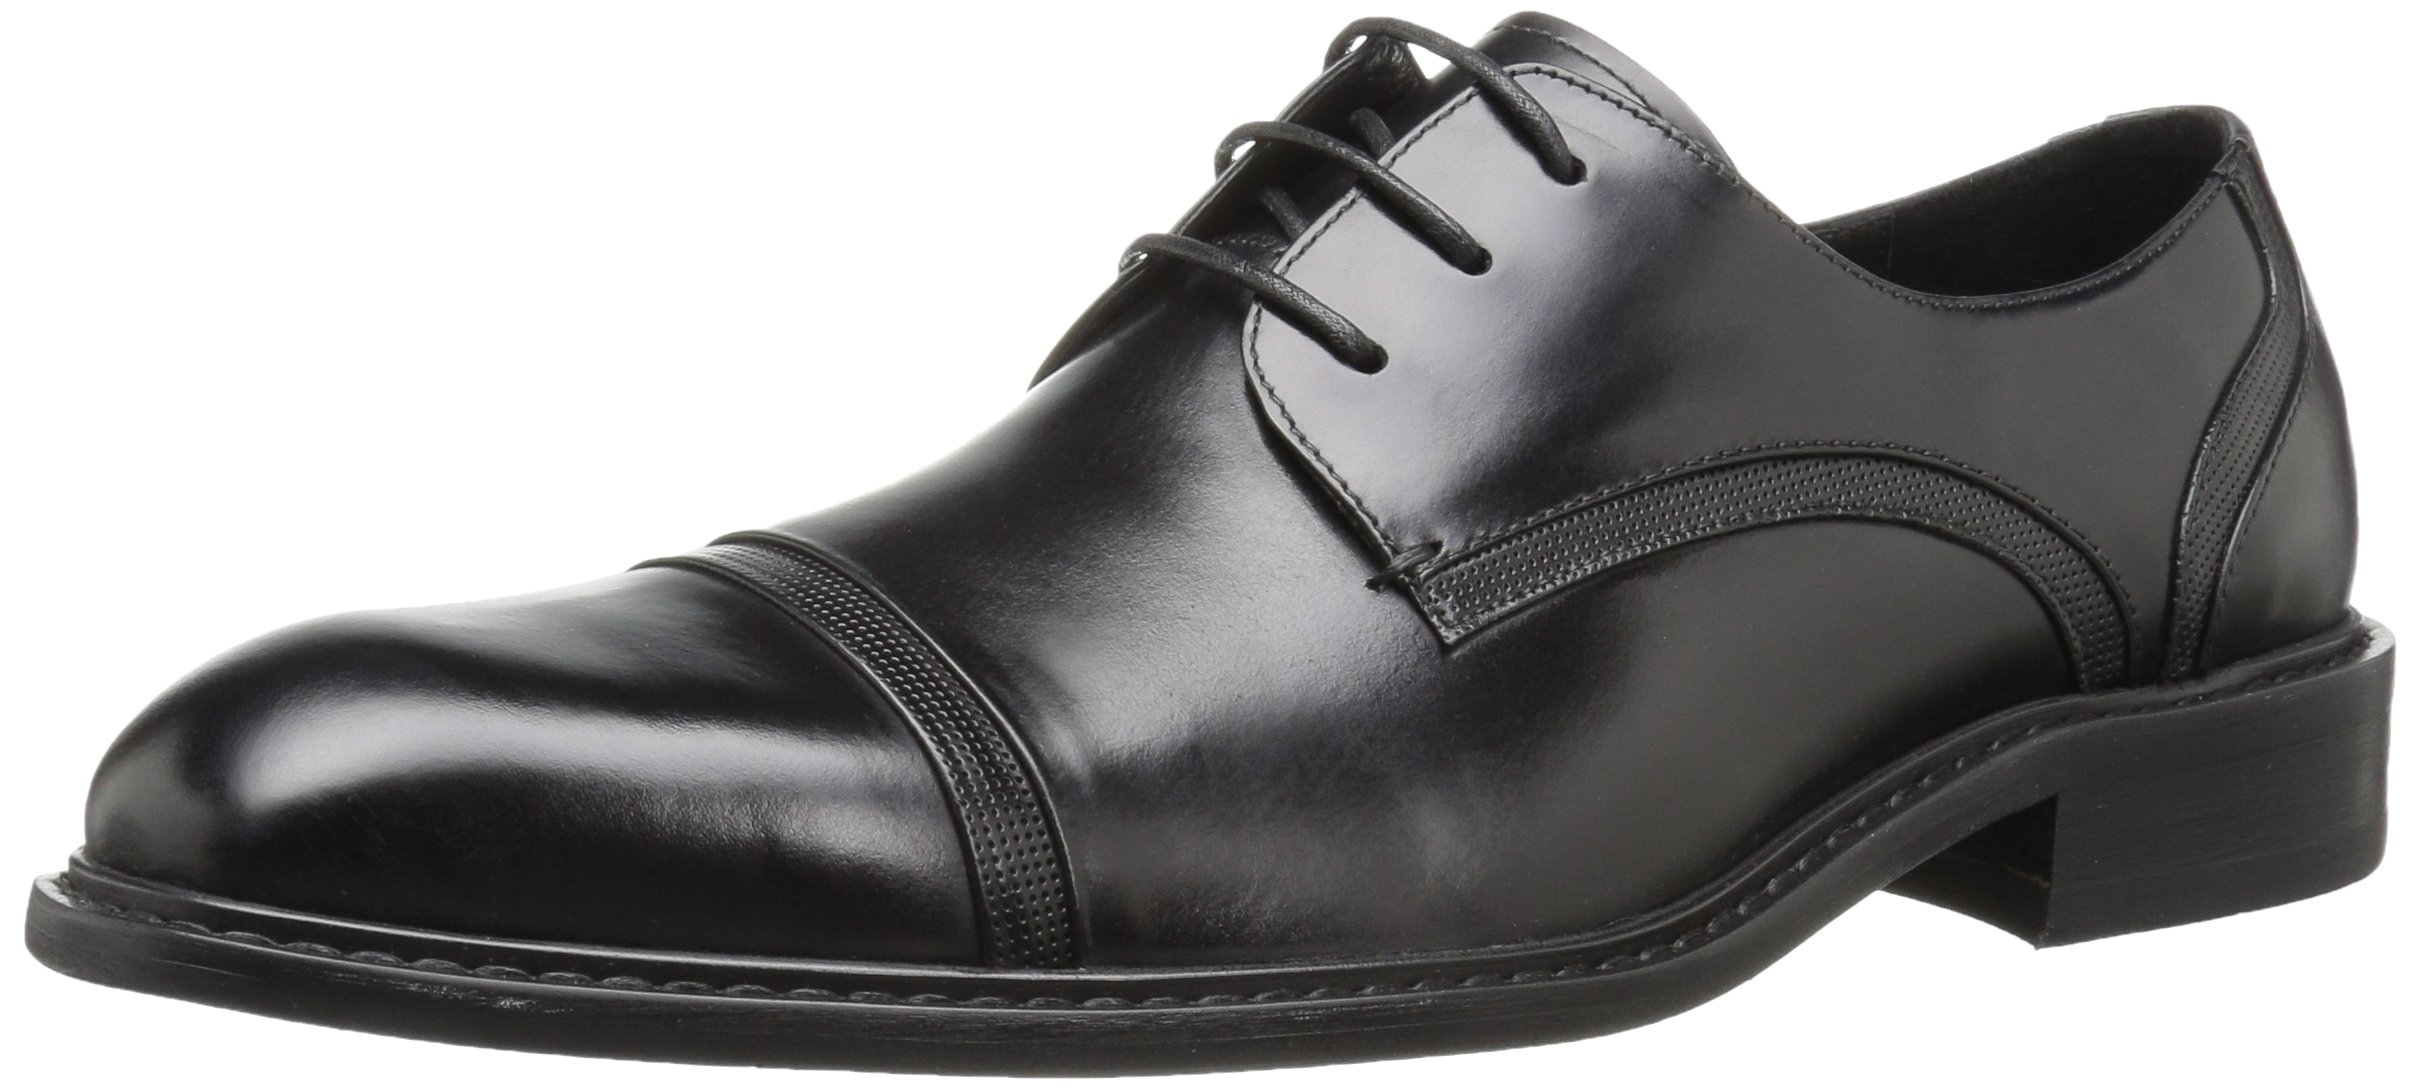 Kenneth Cole New York Men's Re-Leave-d Oxford, Black, 9.5 M US